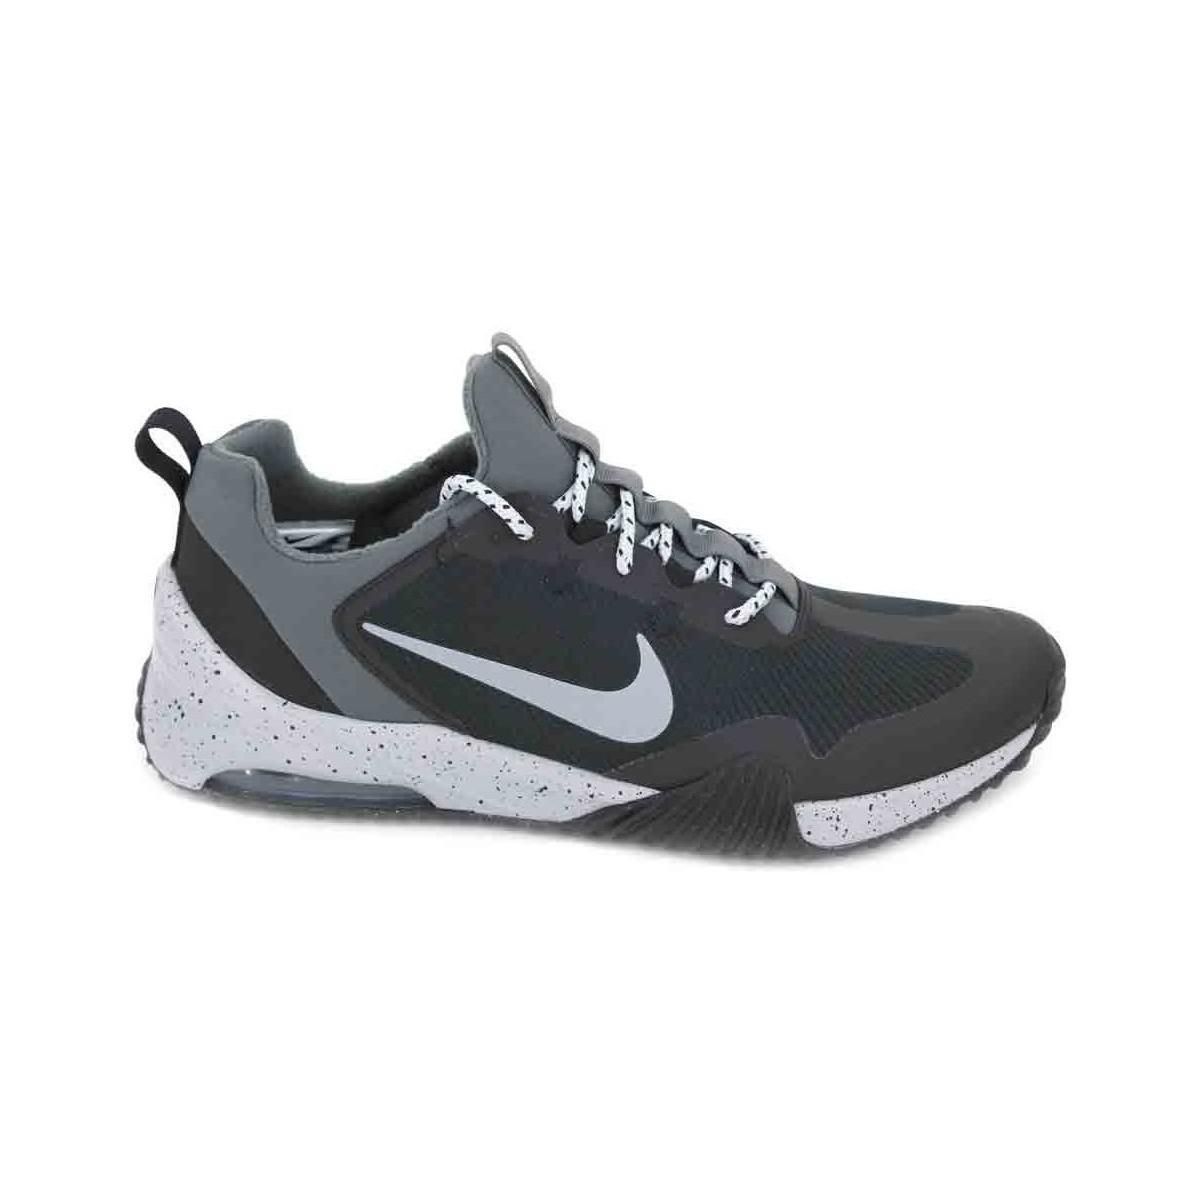 Nike. Air Max Grigora 916767 Men s Trainers Men s Shoes (trainers) In Black 423344a8d